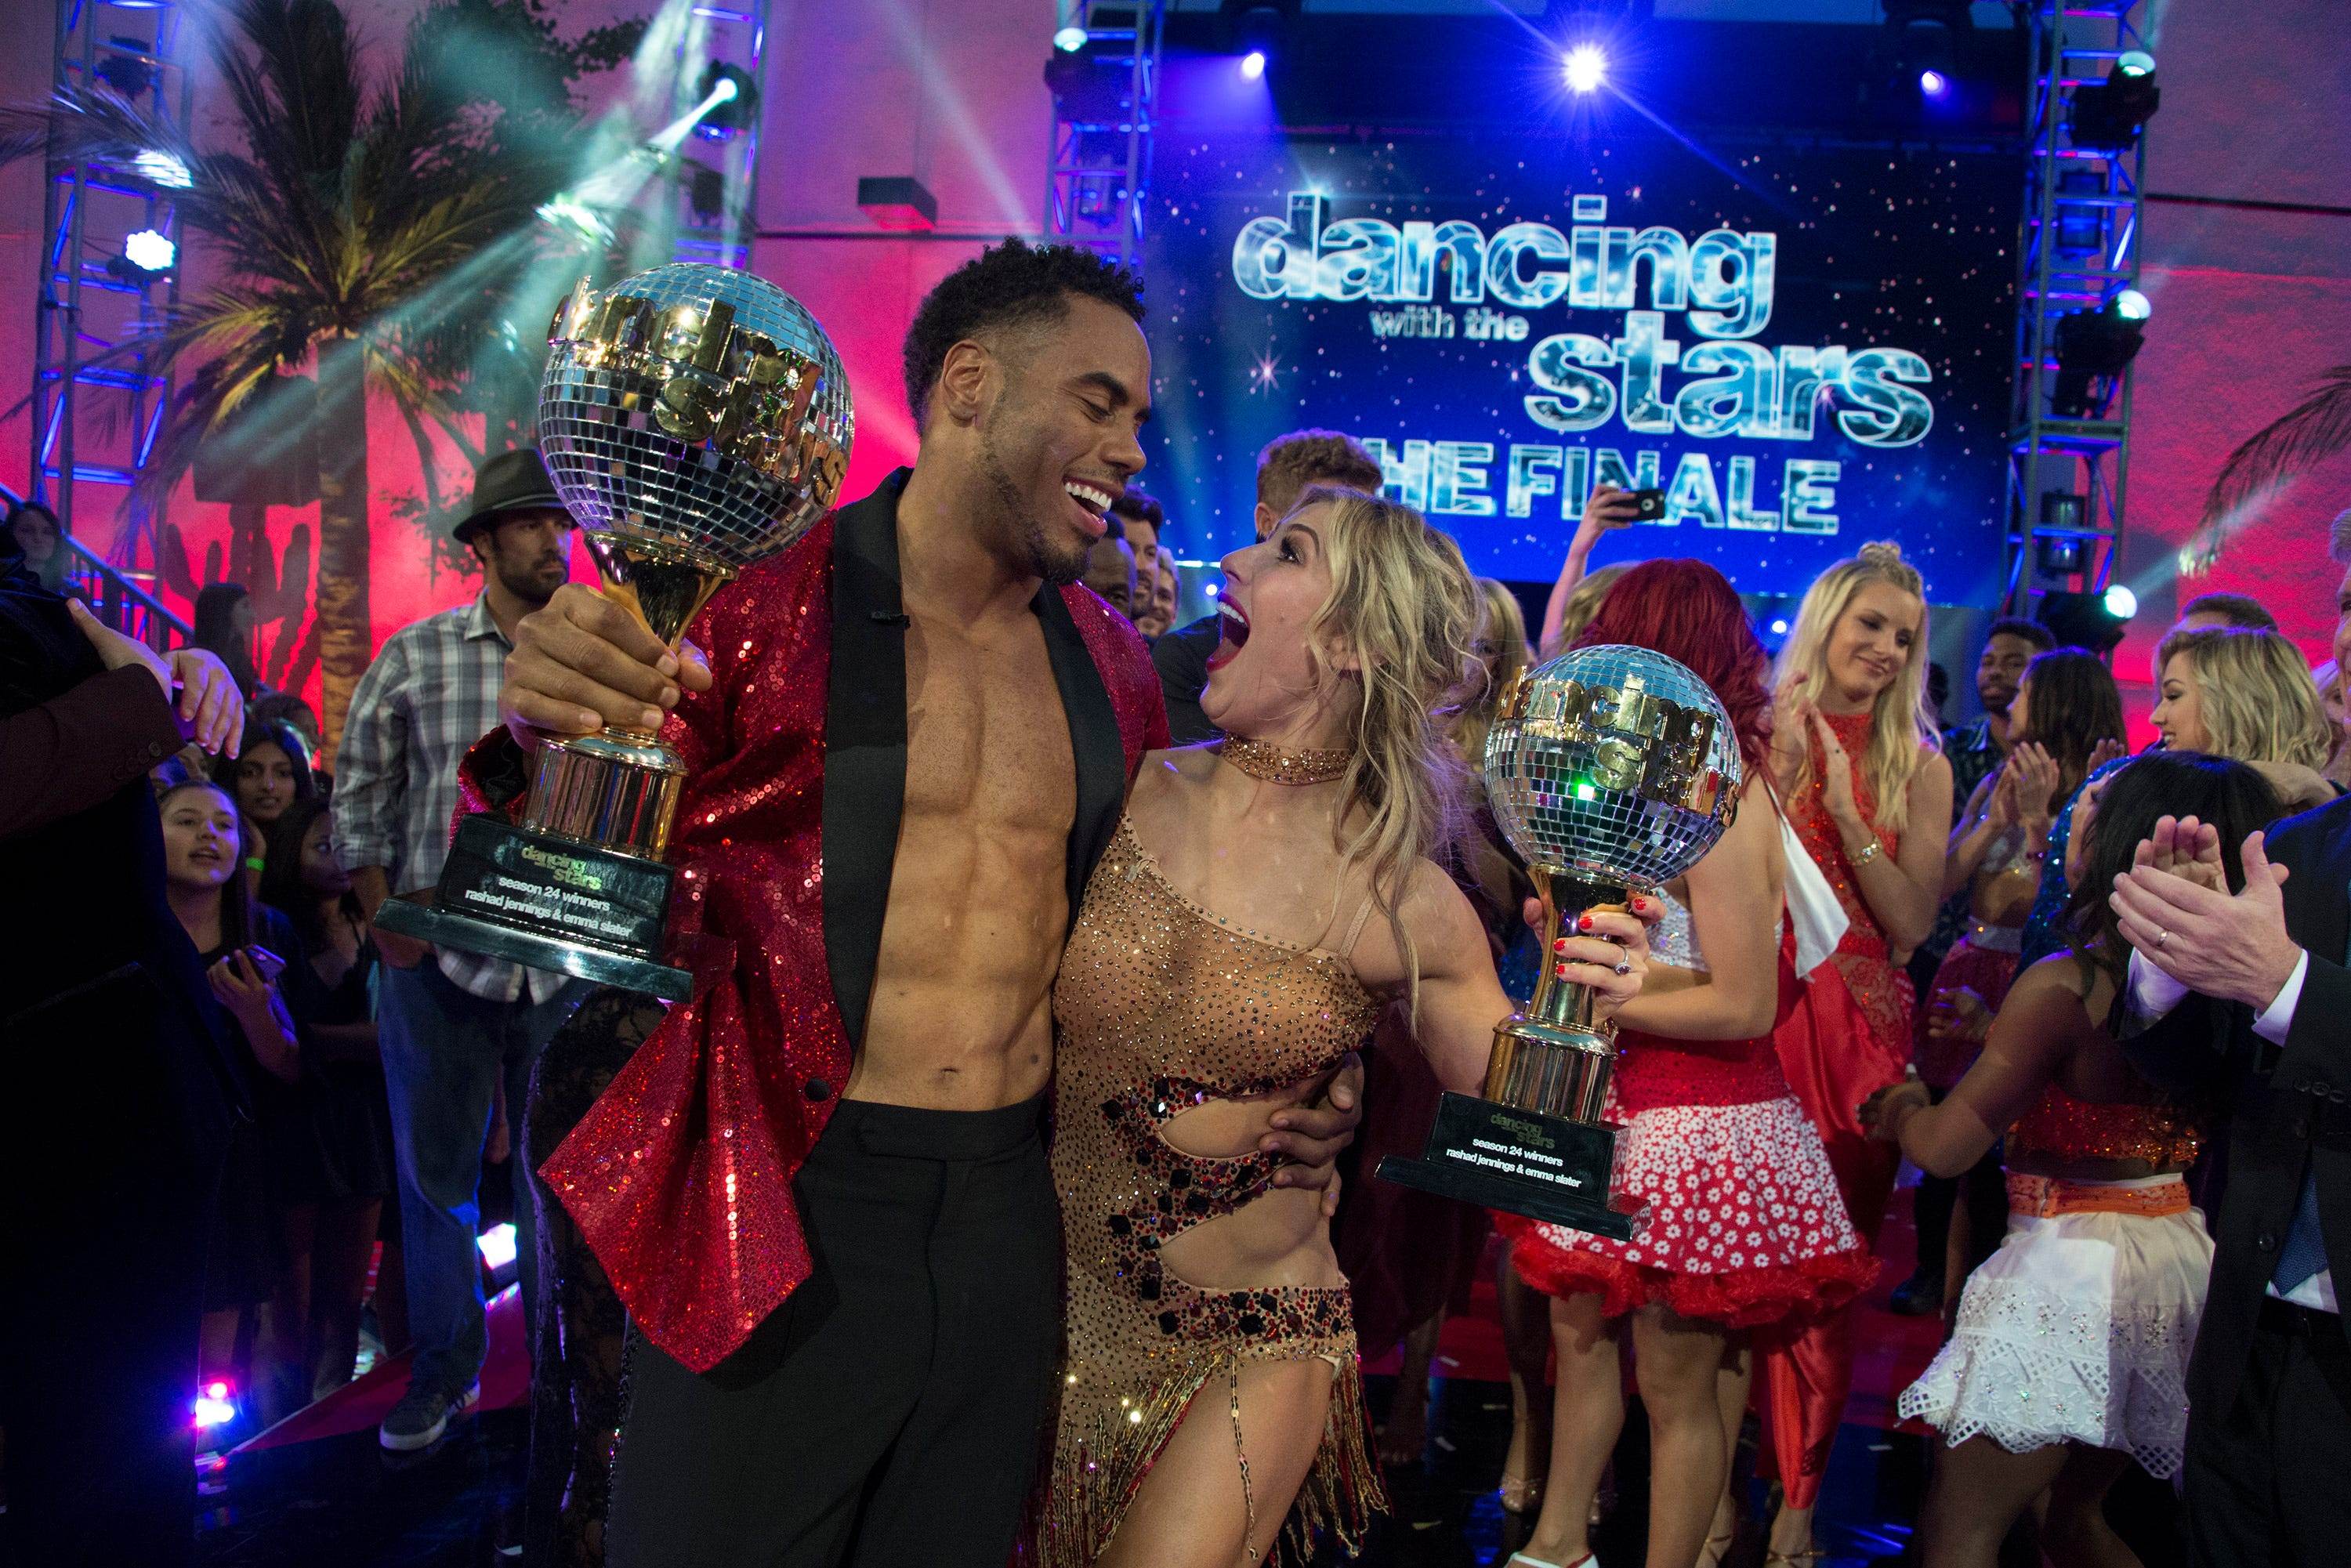 Former Giants running back Rashad Jennings wins Dancing with the Stars